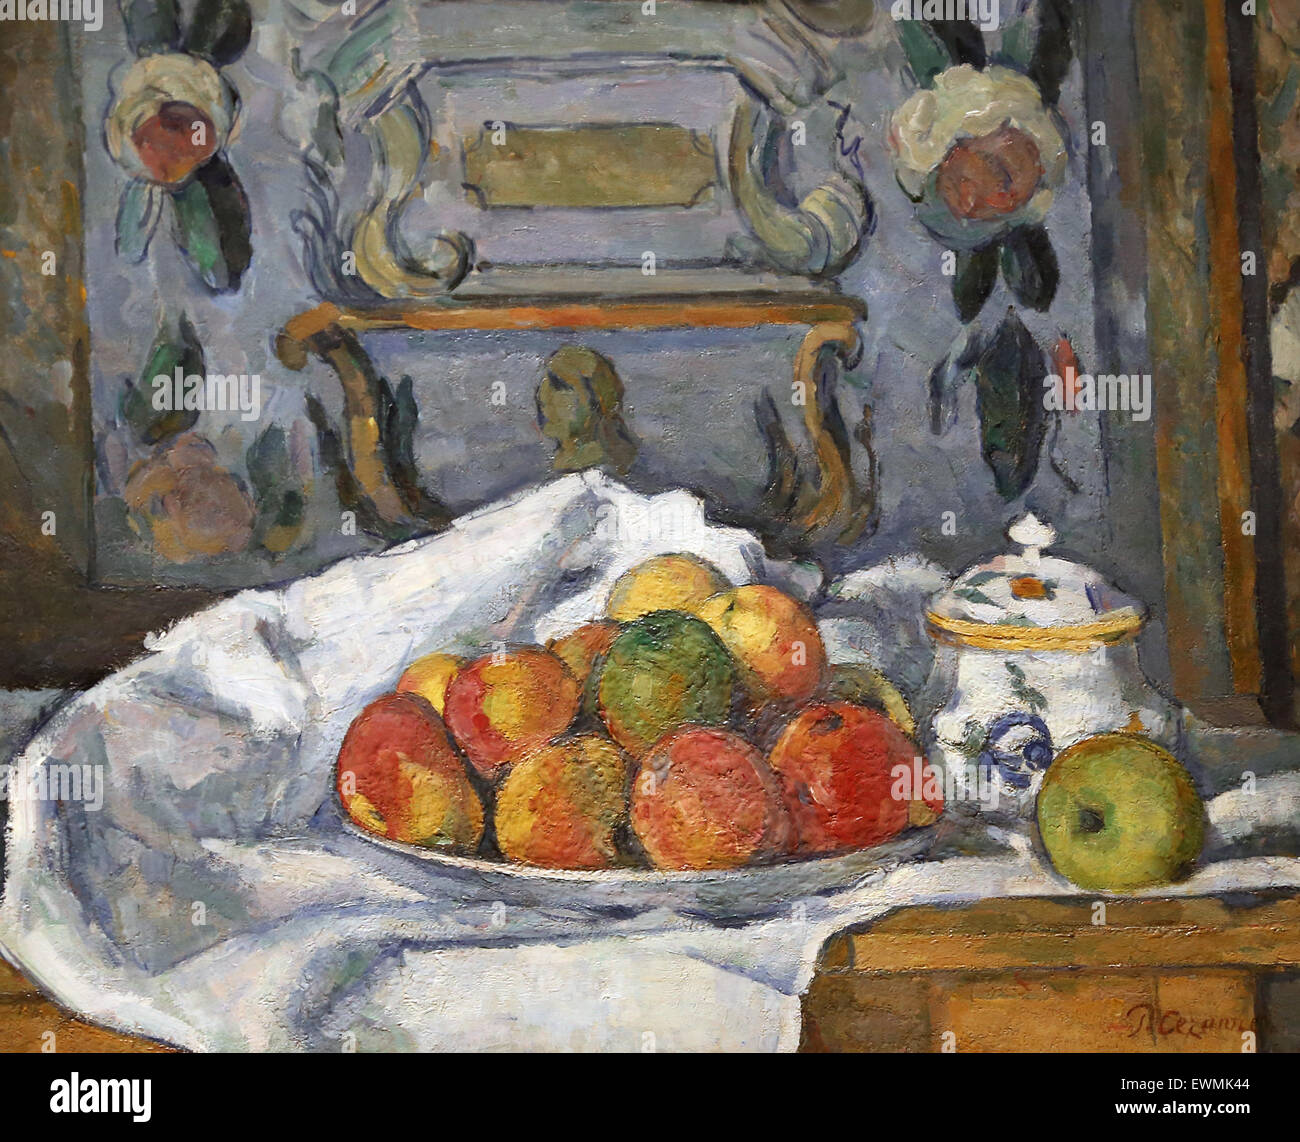 Paul Cezanne (1839-1906).  French painter. Dish of Apples, 1876-77. Oil of canvas. Metropolitan Museum of Art. NY. - Stock Image